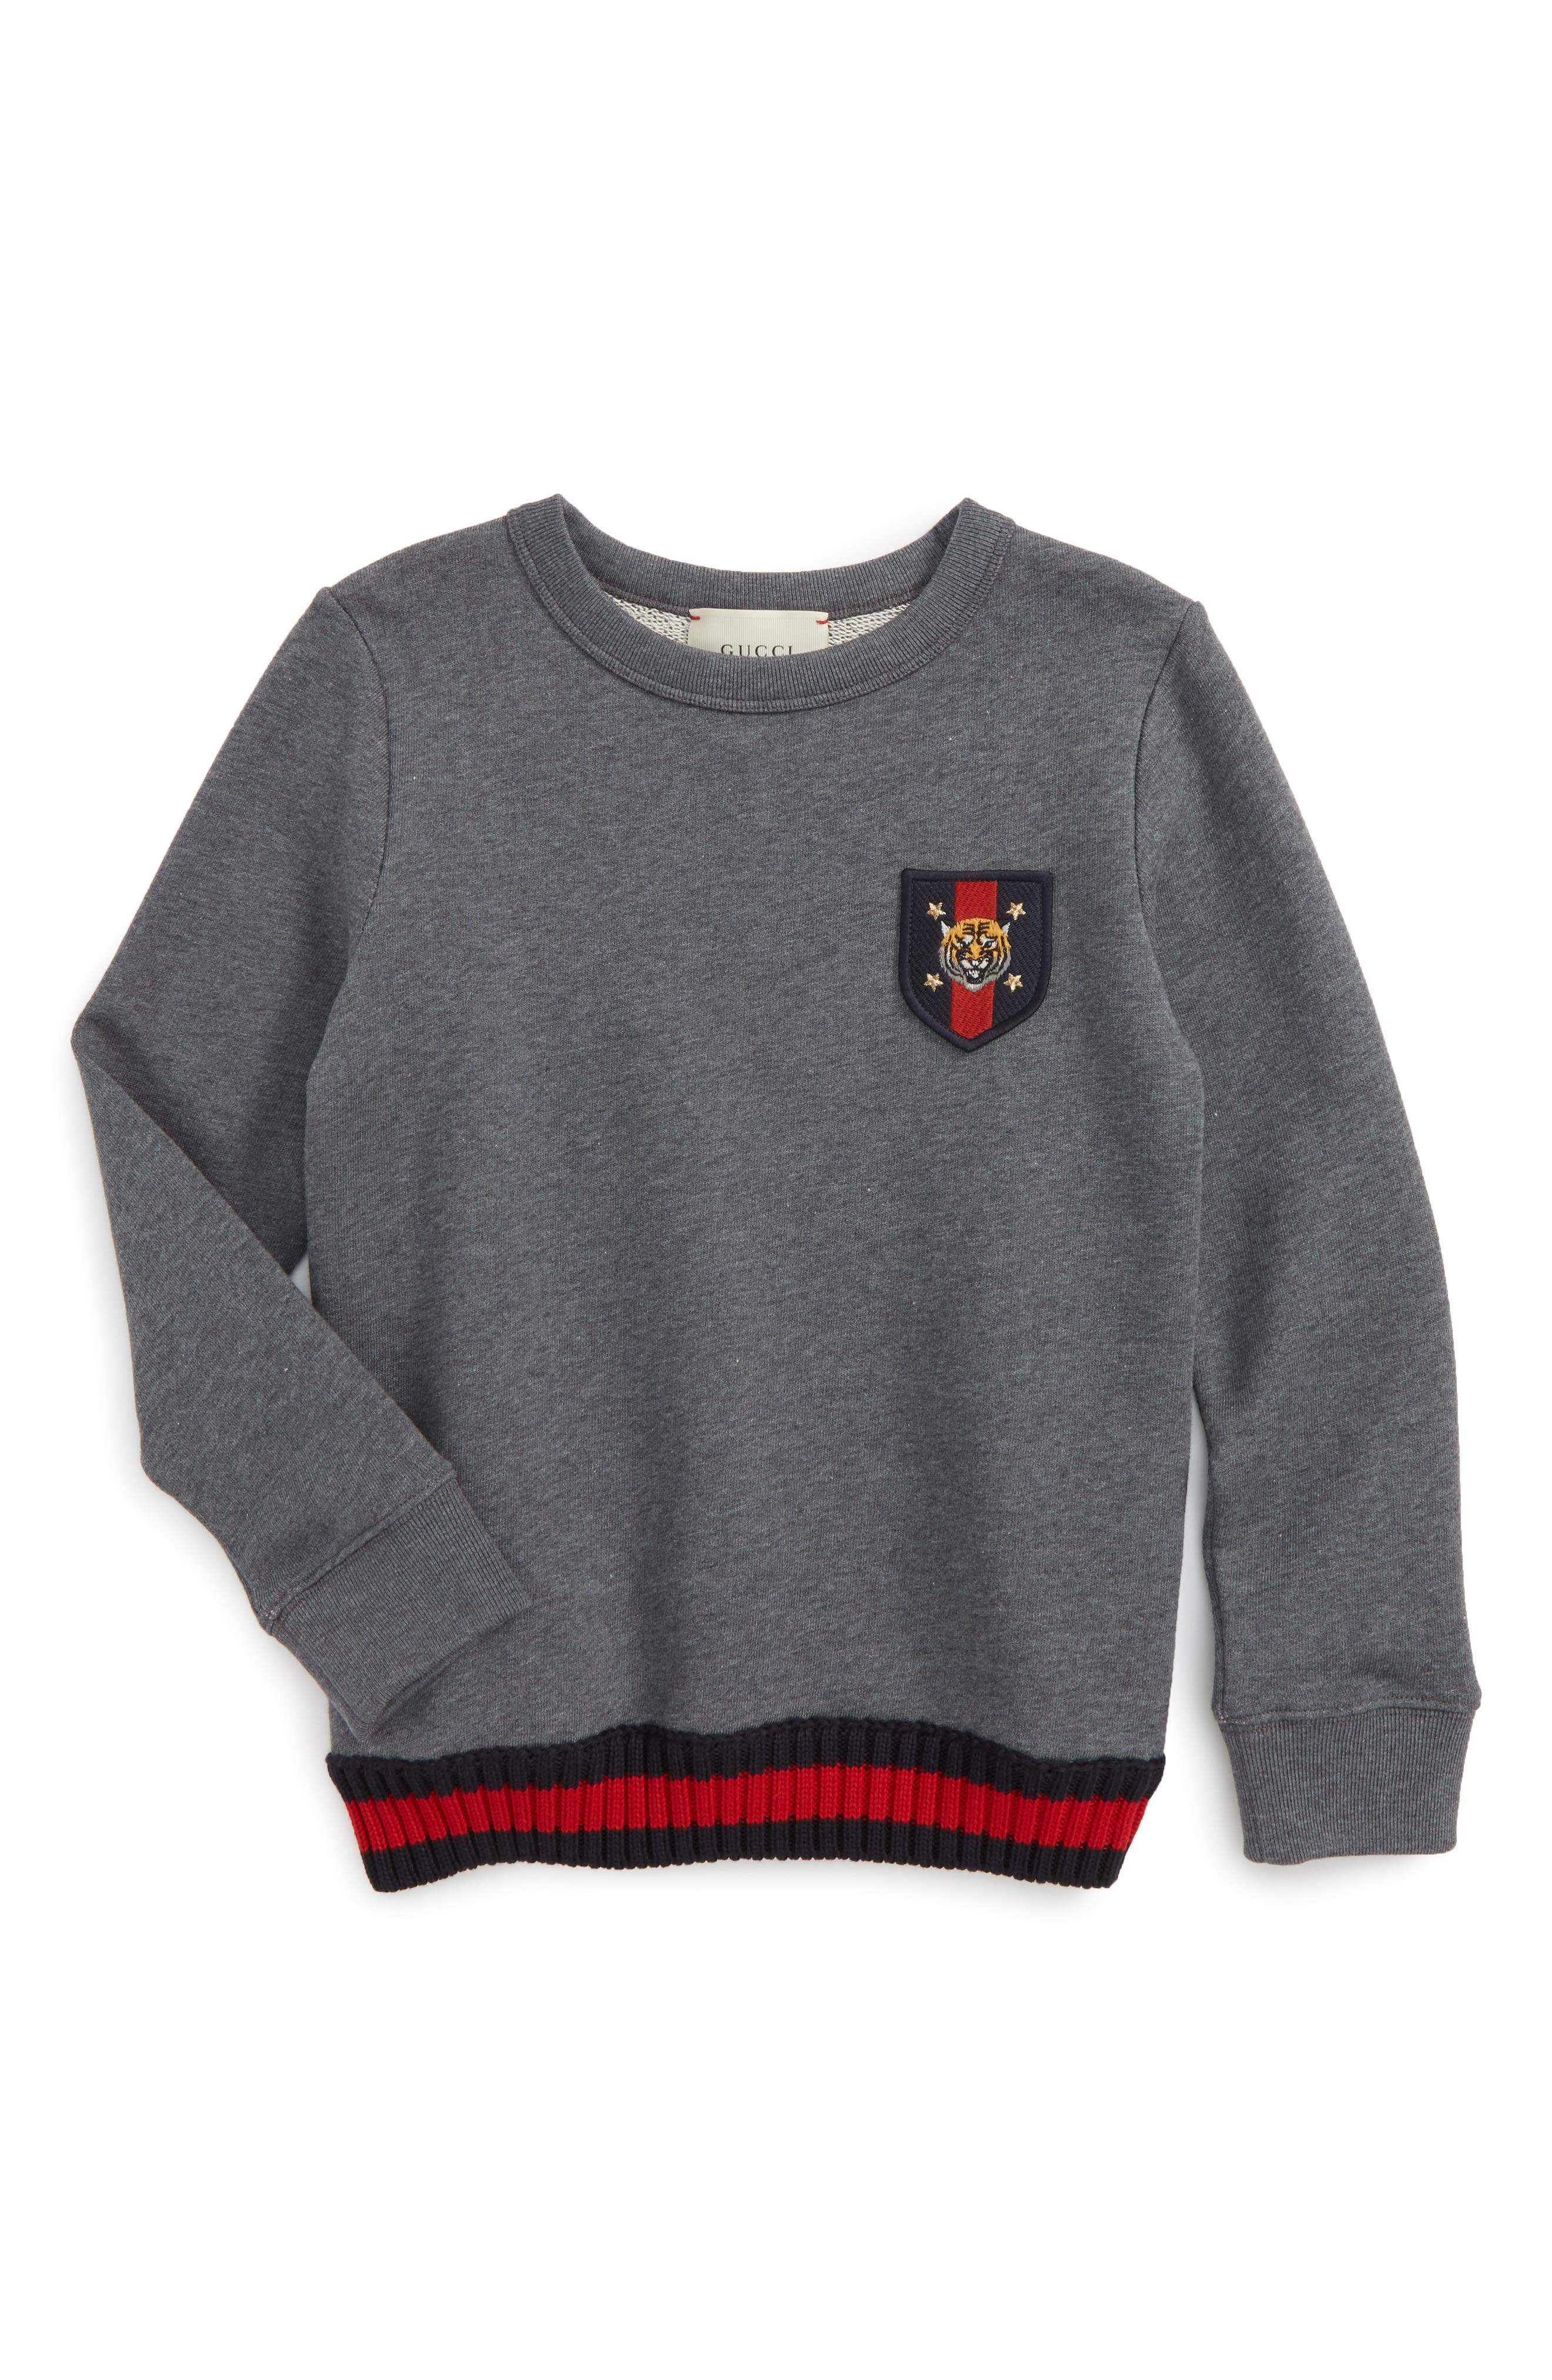 Main Image - Gucci Patch Sweatshirt (Little Boys & Big Boys)